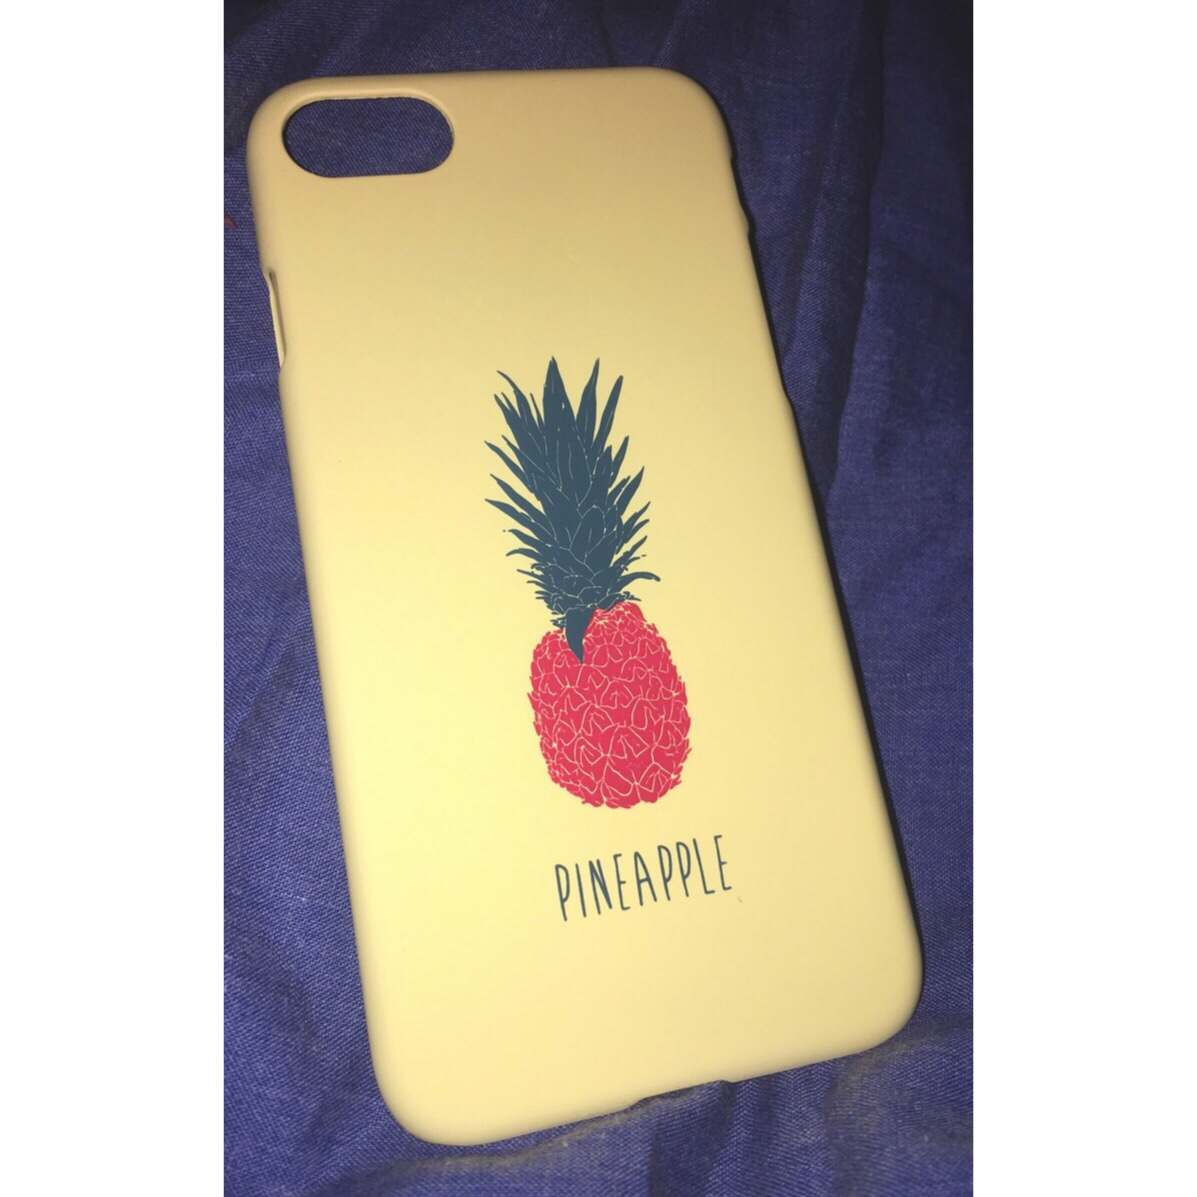 online store 14b61 c95c6 IPhone 6/6S Pineapple Phone Case. Pastel yellow with... - Depop